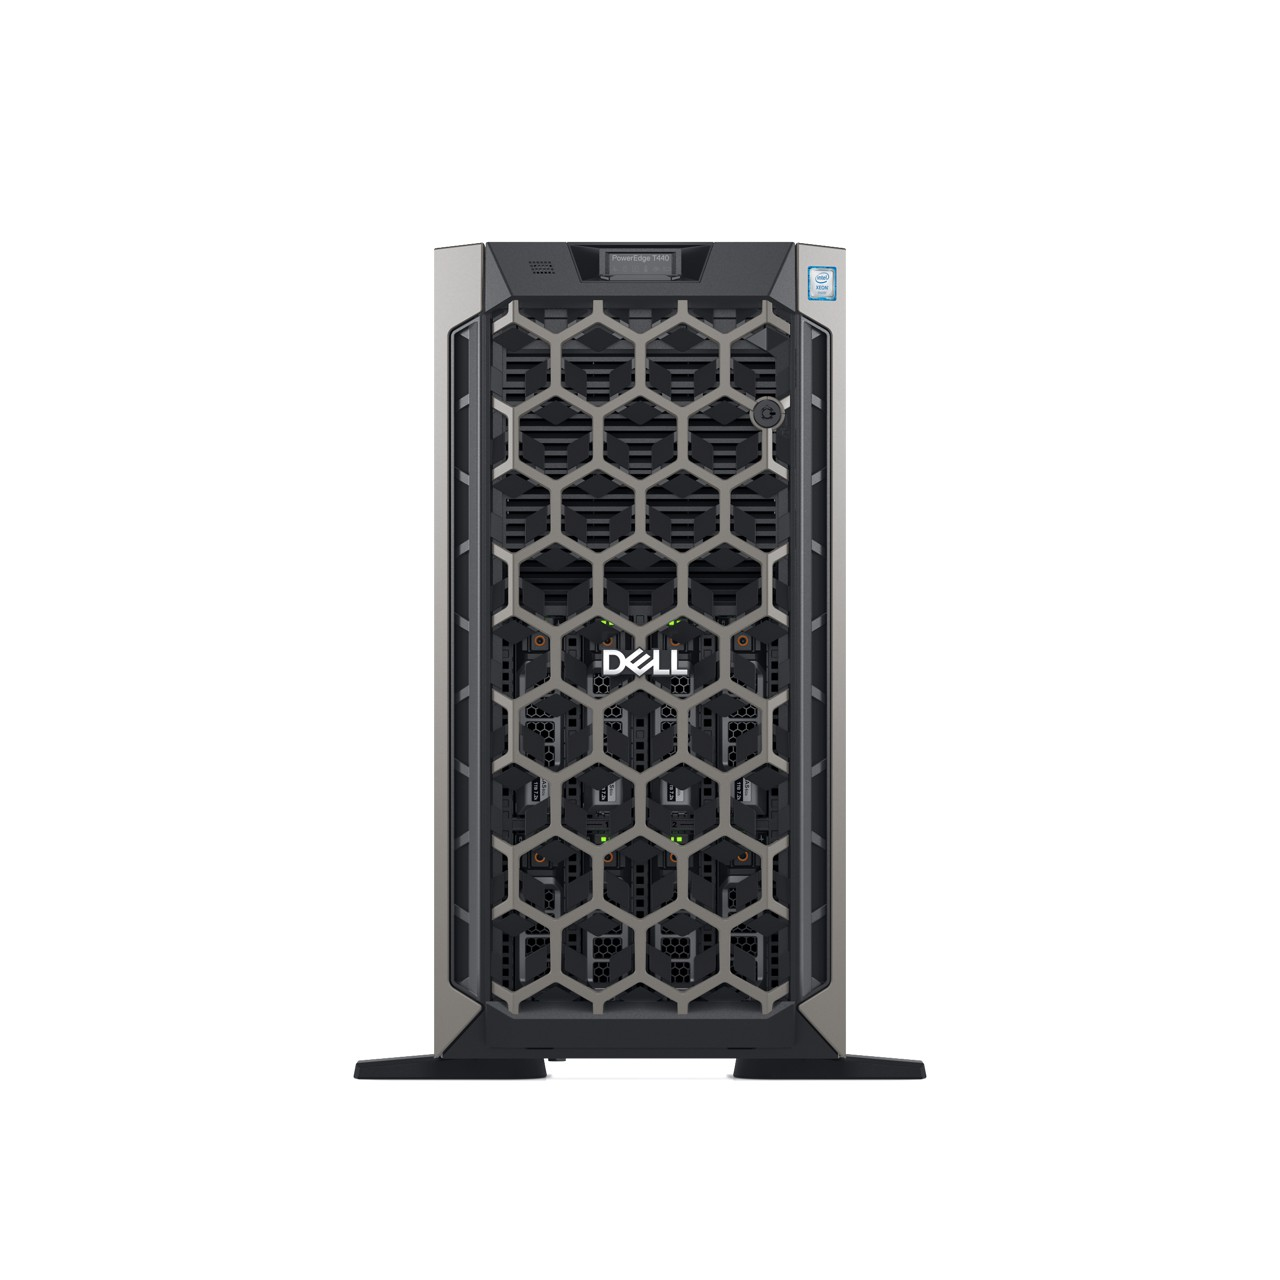 Poweredge T440 Servidor Intel® Xeon® Silver 2,1 Ghz 16 Gb Ddr4-sdram 61 Tb Torre (5u) 495 W